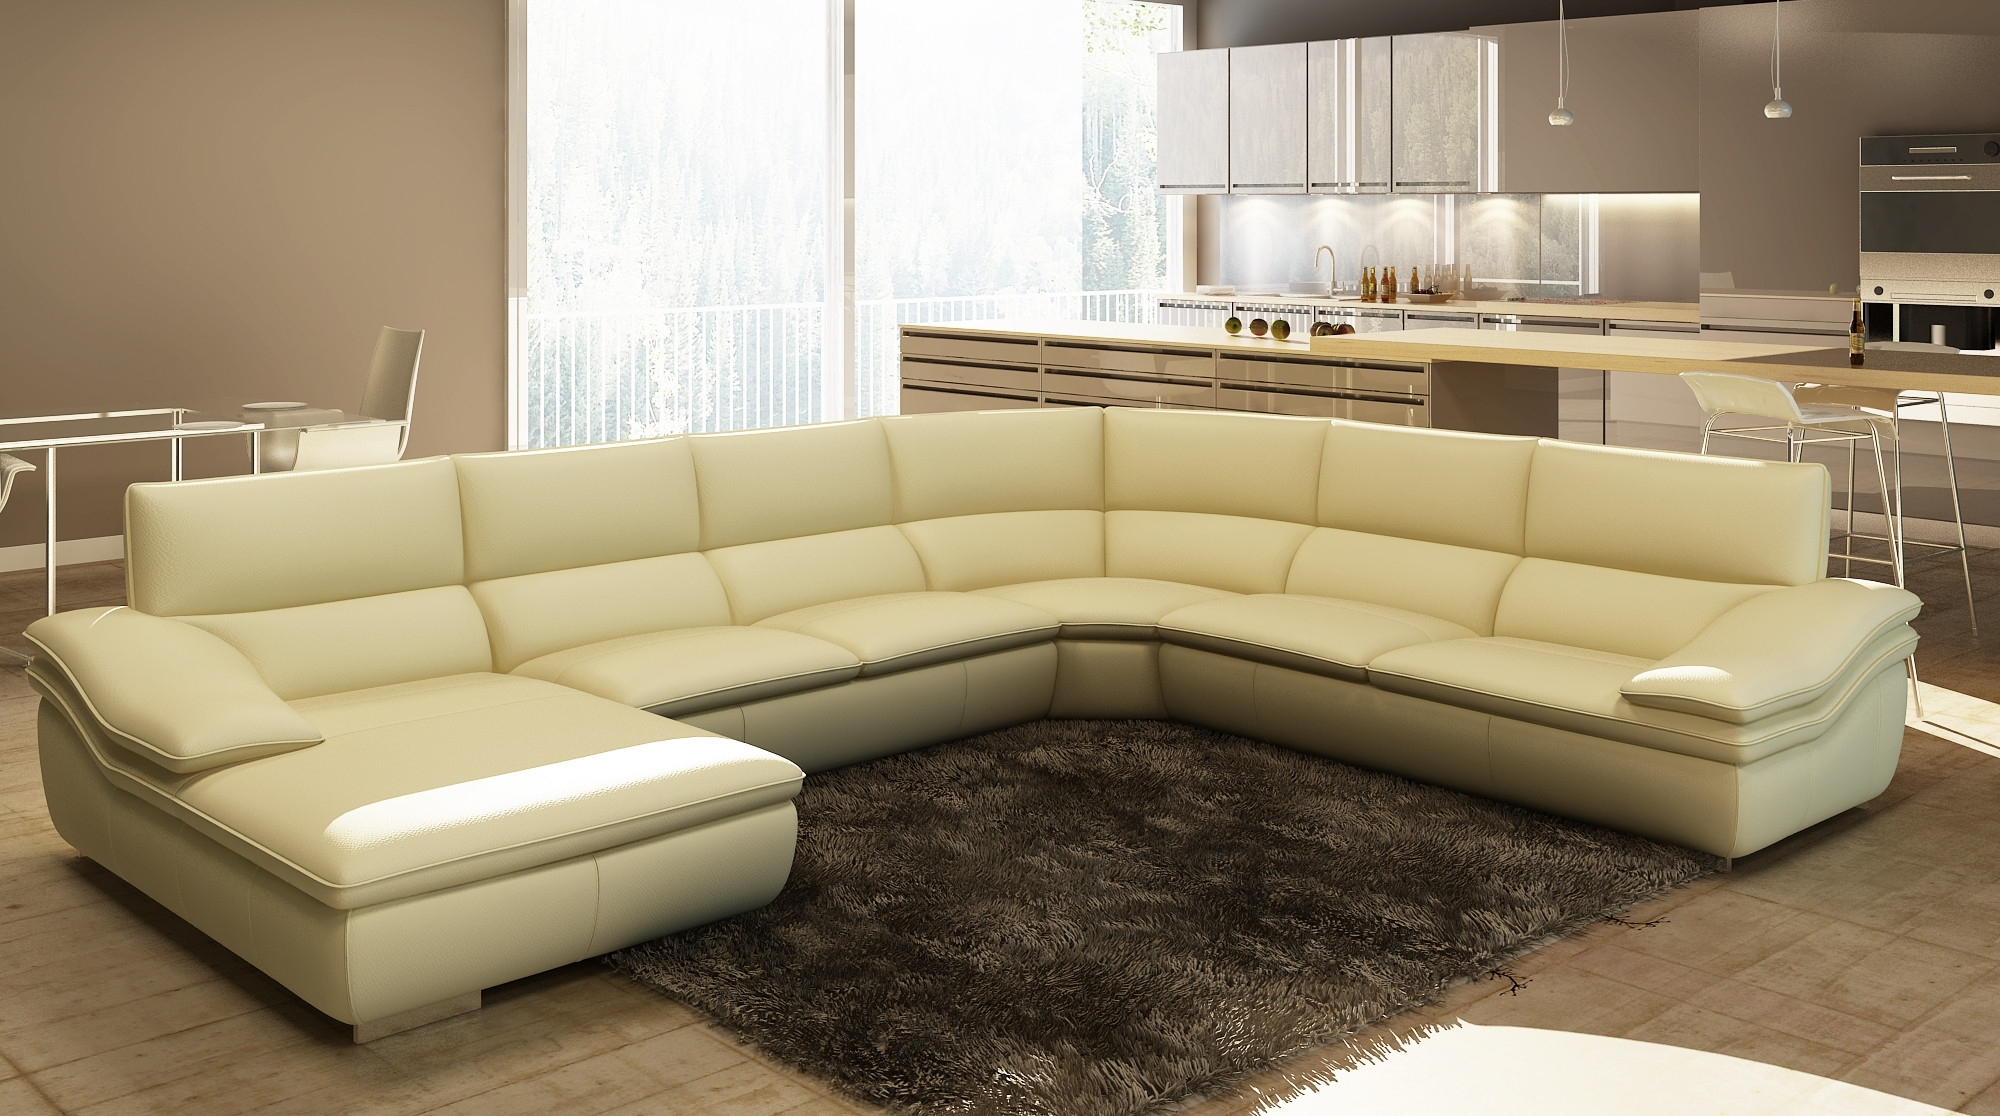 Modern Curved Sofas And U Shaped Couches With Best And Newest Modern U Shaped Sectional Sofas (View 6 of 15)